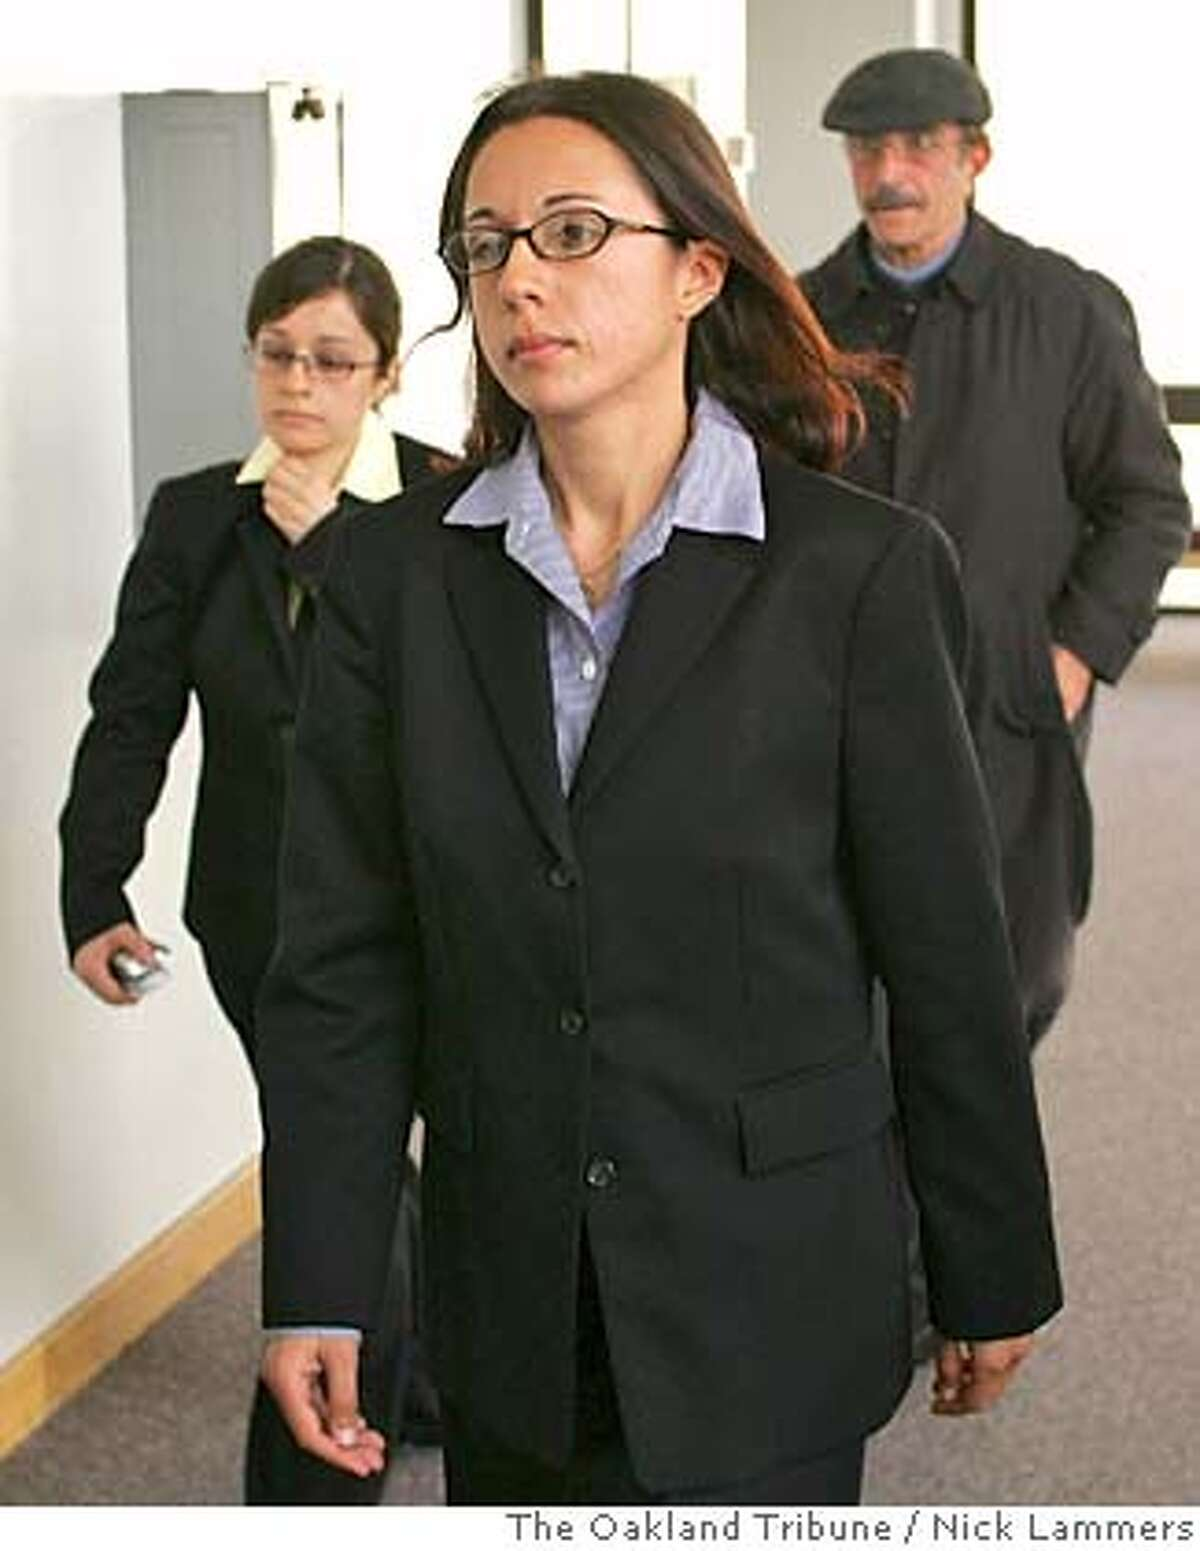 Hamaseh Kianfar leaves Alameda County Superior Court on Thursday, April 7, 2005, in Oakland, Calif., after an appearance on a charge of accessory to attempted murder in a throat-slashing attack on a 75-year-old woman. Kianfar is on paid administrative leave from a part-time job at the guidance center at San Leandro's juvenile hall. She apparently did not call police to report the attack allegedly committed by a 16-year-old Oakland girl, authorities said. (AP Photo/The Oakland Tribune, Nick Lammers) Ran on: 06-02-2005 Hamaseh Kianfar Ran on: 07-25-2005 Oakland As owner Lew Wolff has plans for an innovative ballpark -- but he lacks a place to put it. LOCALS PLEASE CREDIT MAGS OUT